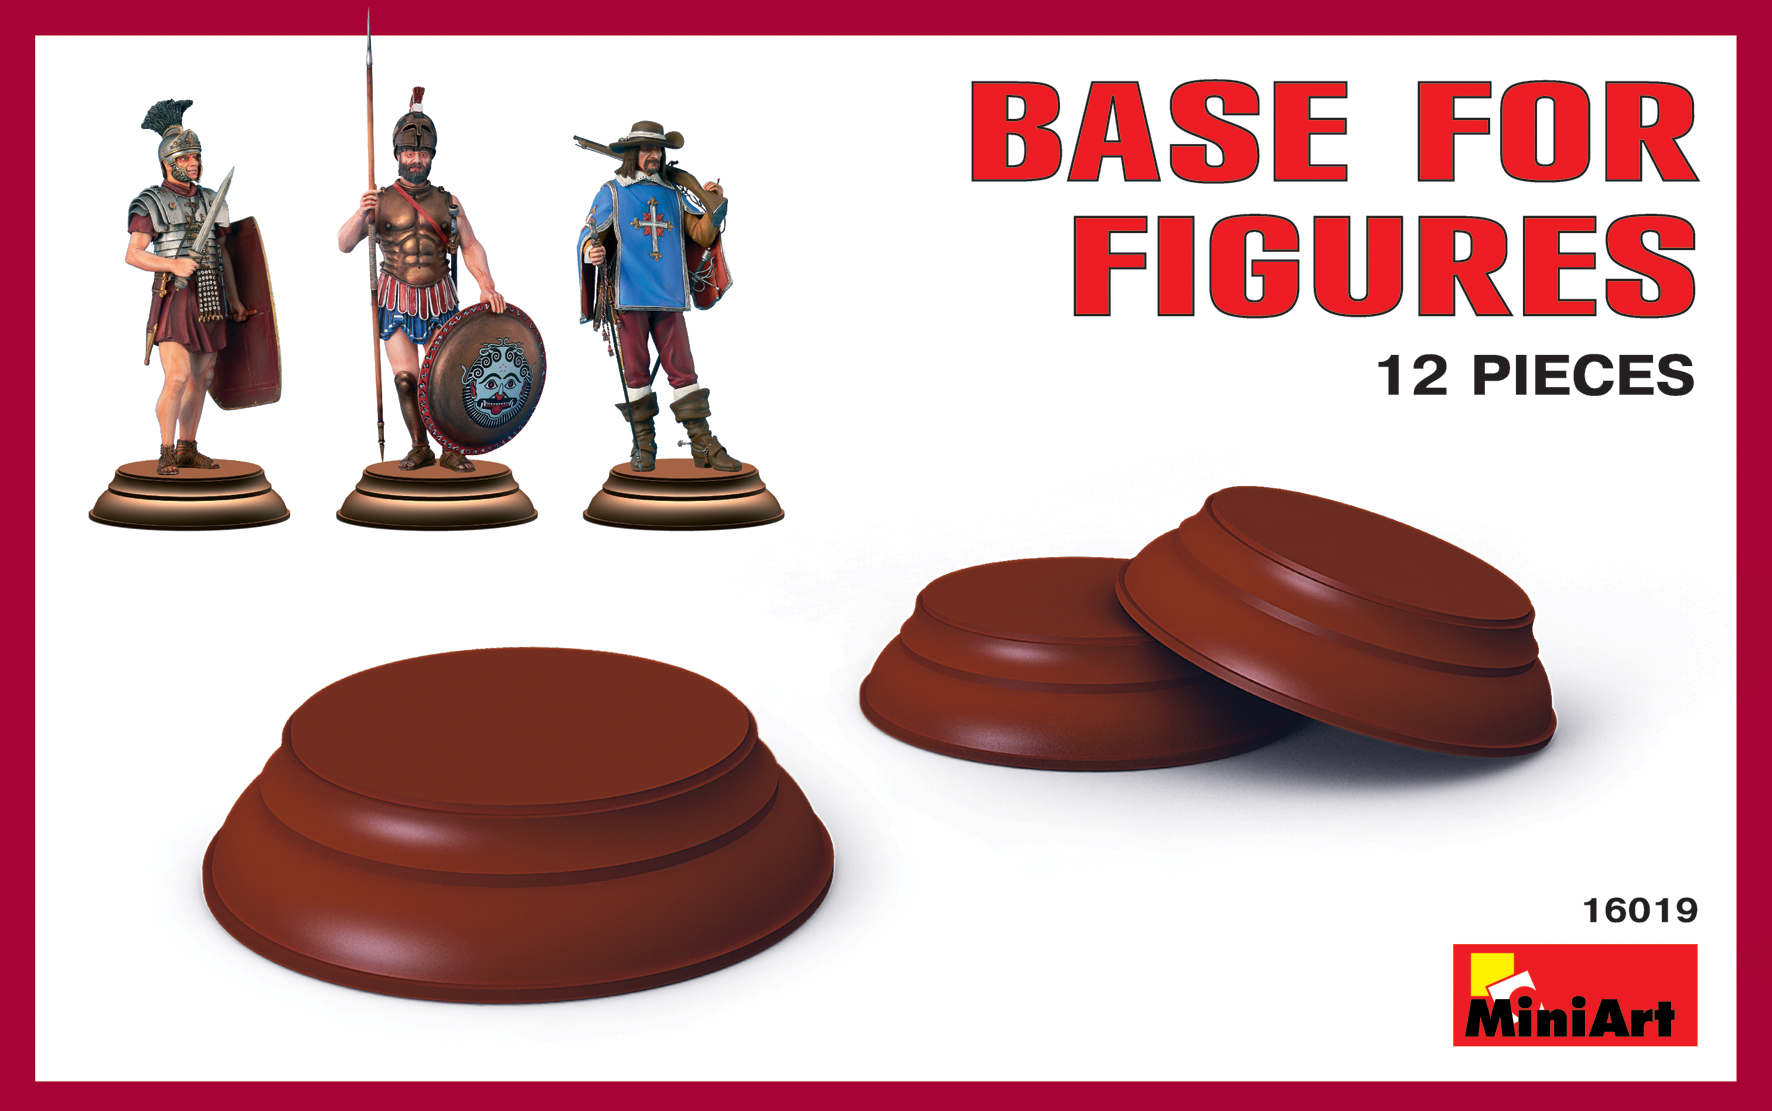 16019 BASES FOR FIGURES